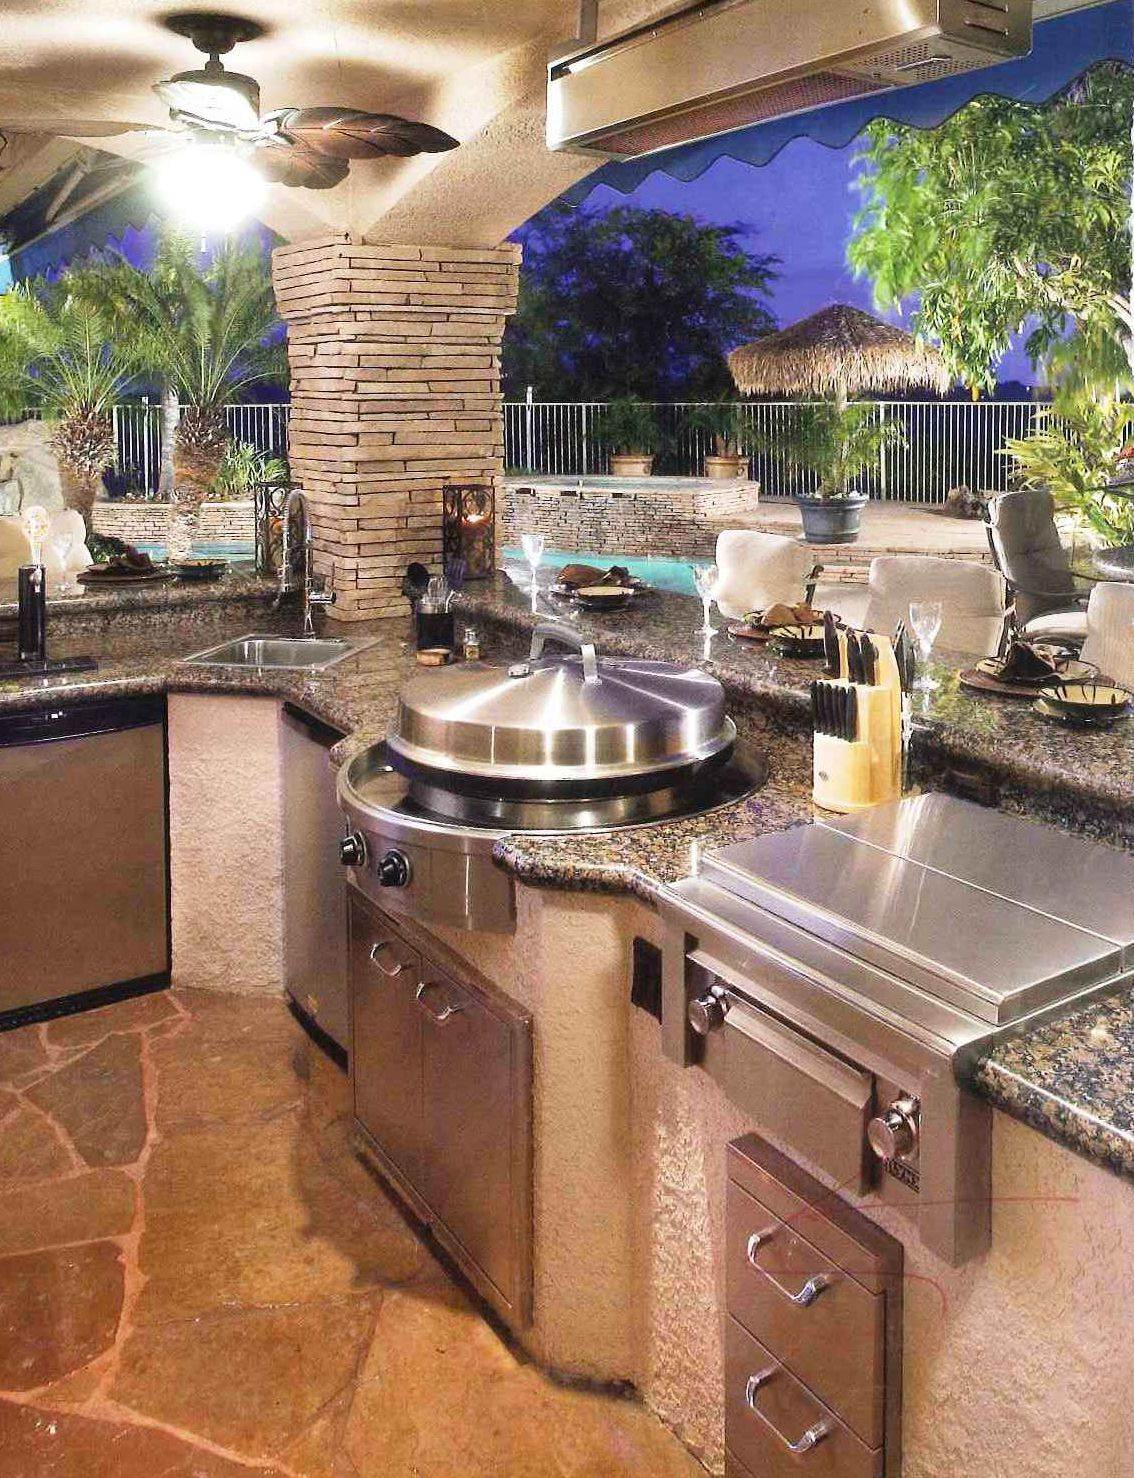 70 Awesomely clever ideas for outdoor kitchen designs | Outdoor ...